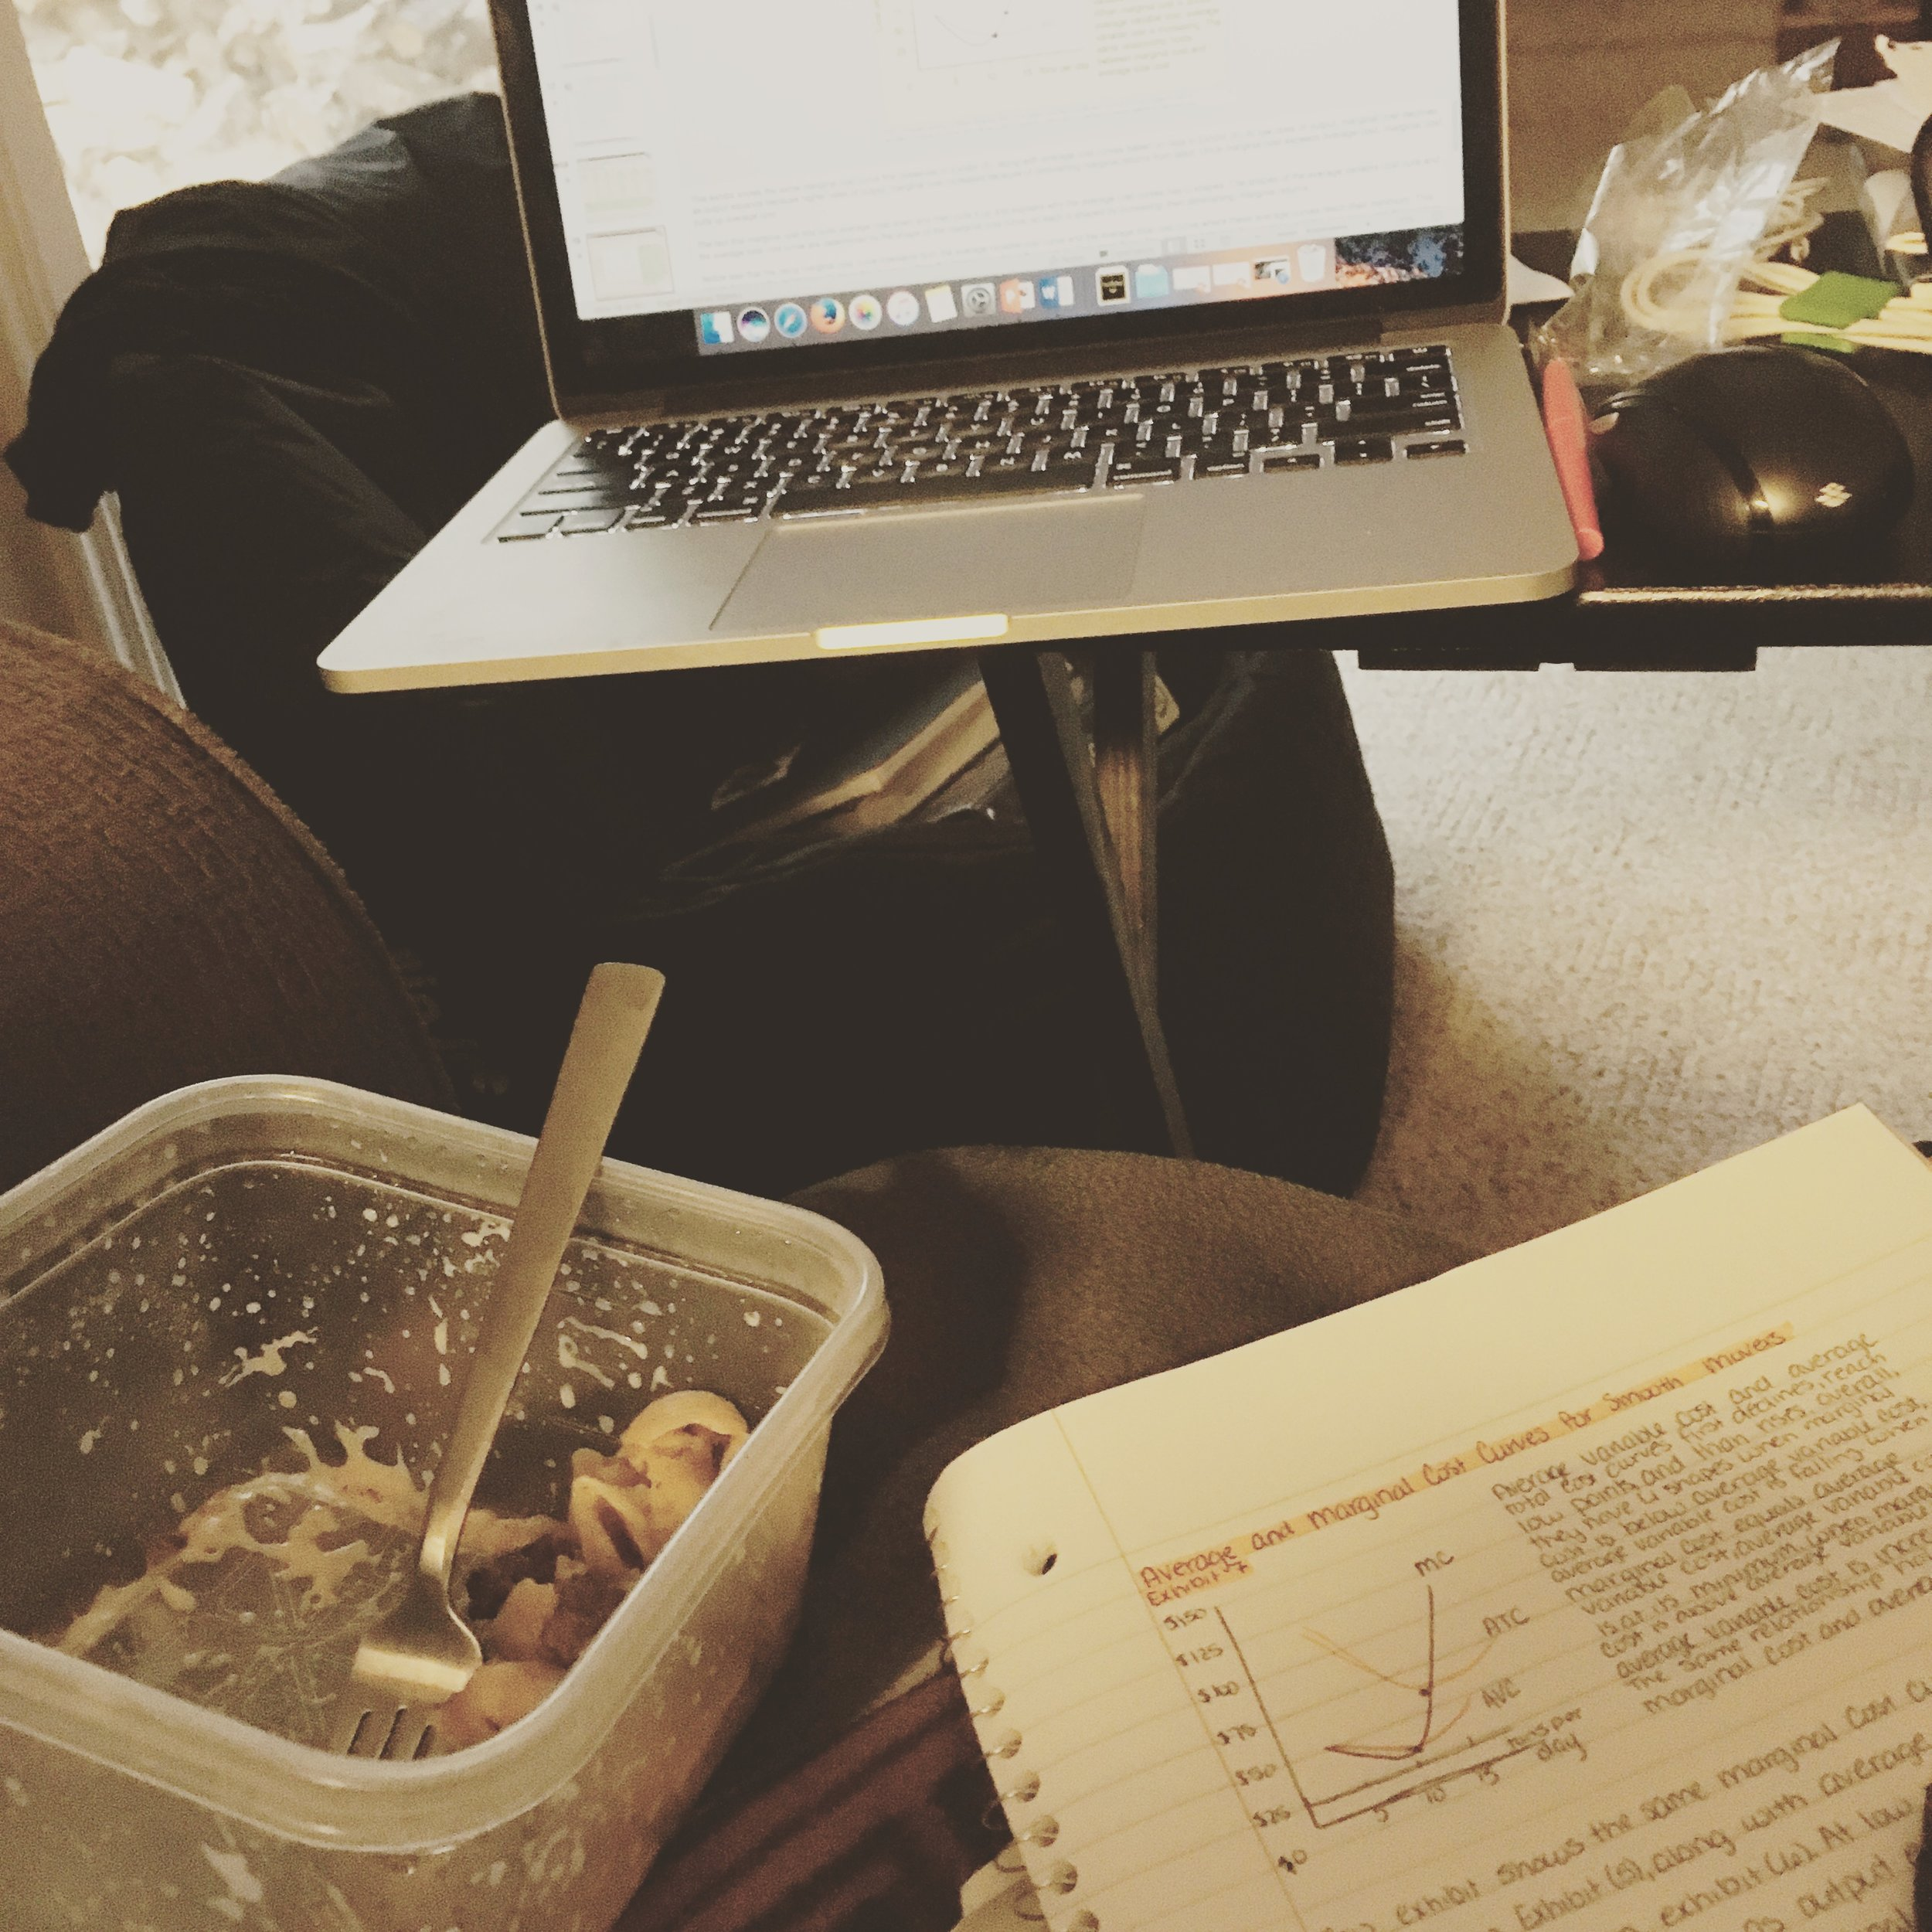 1818 || Well, this is a familiar sight. Working on mu economics notes while eating dinner. I can't wait for this semester to be over!